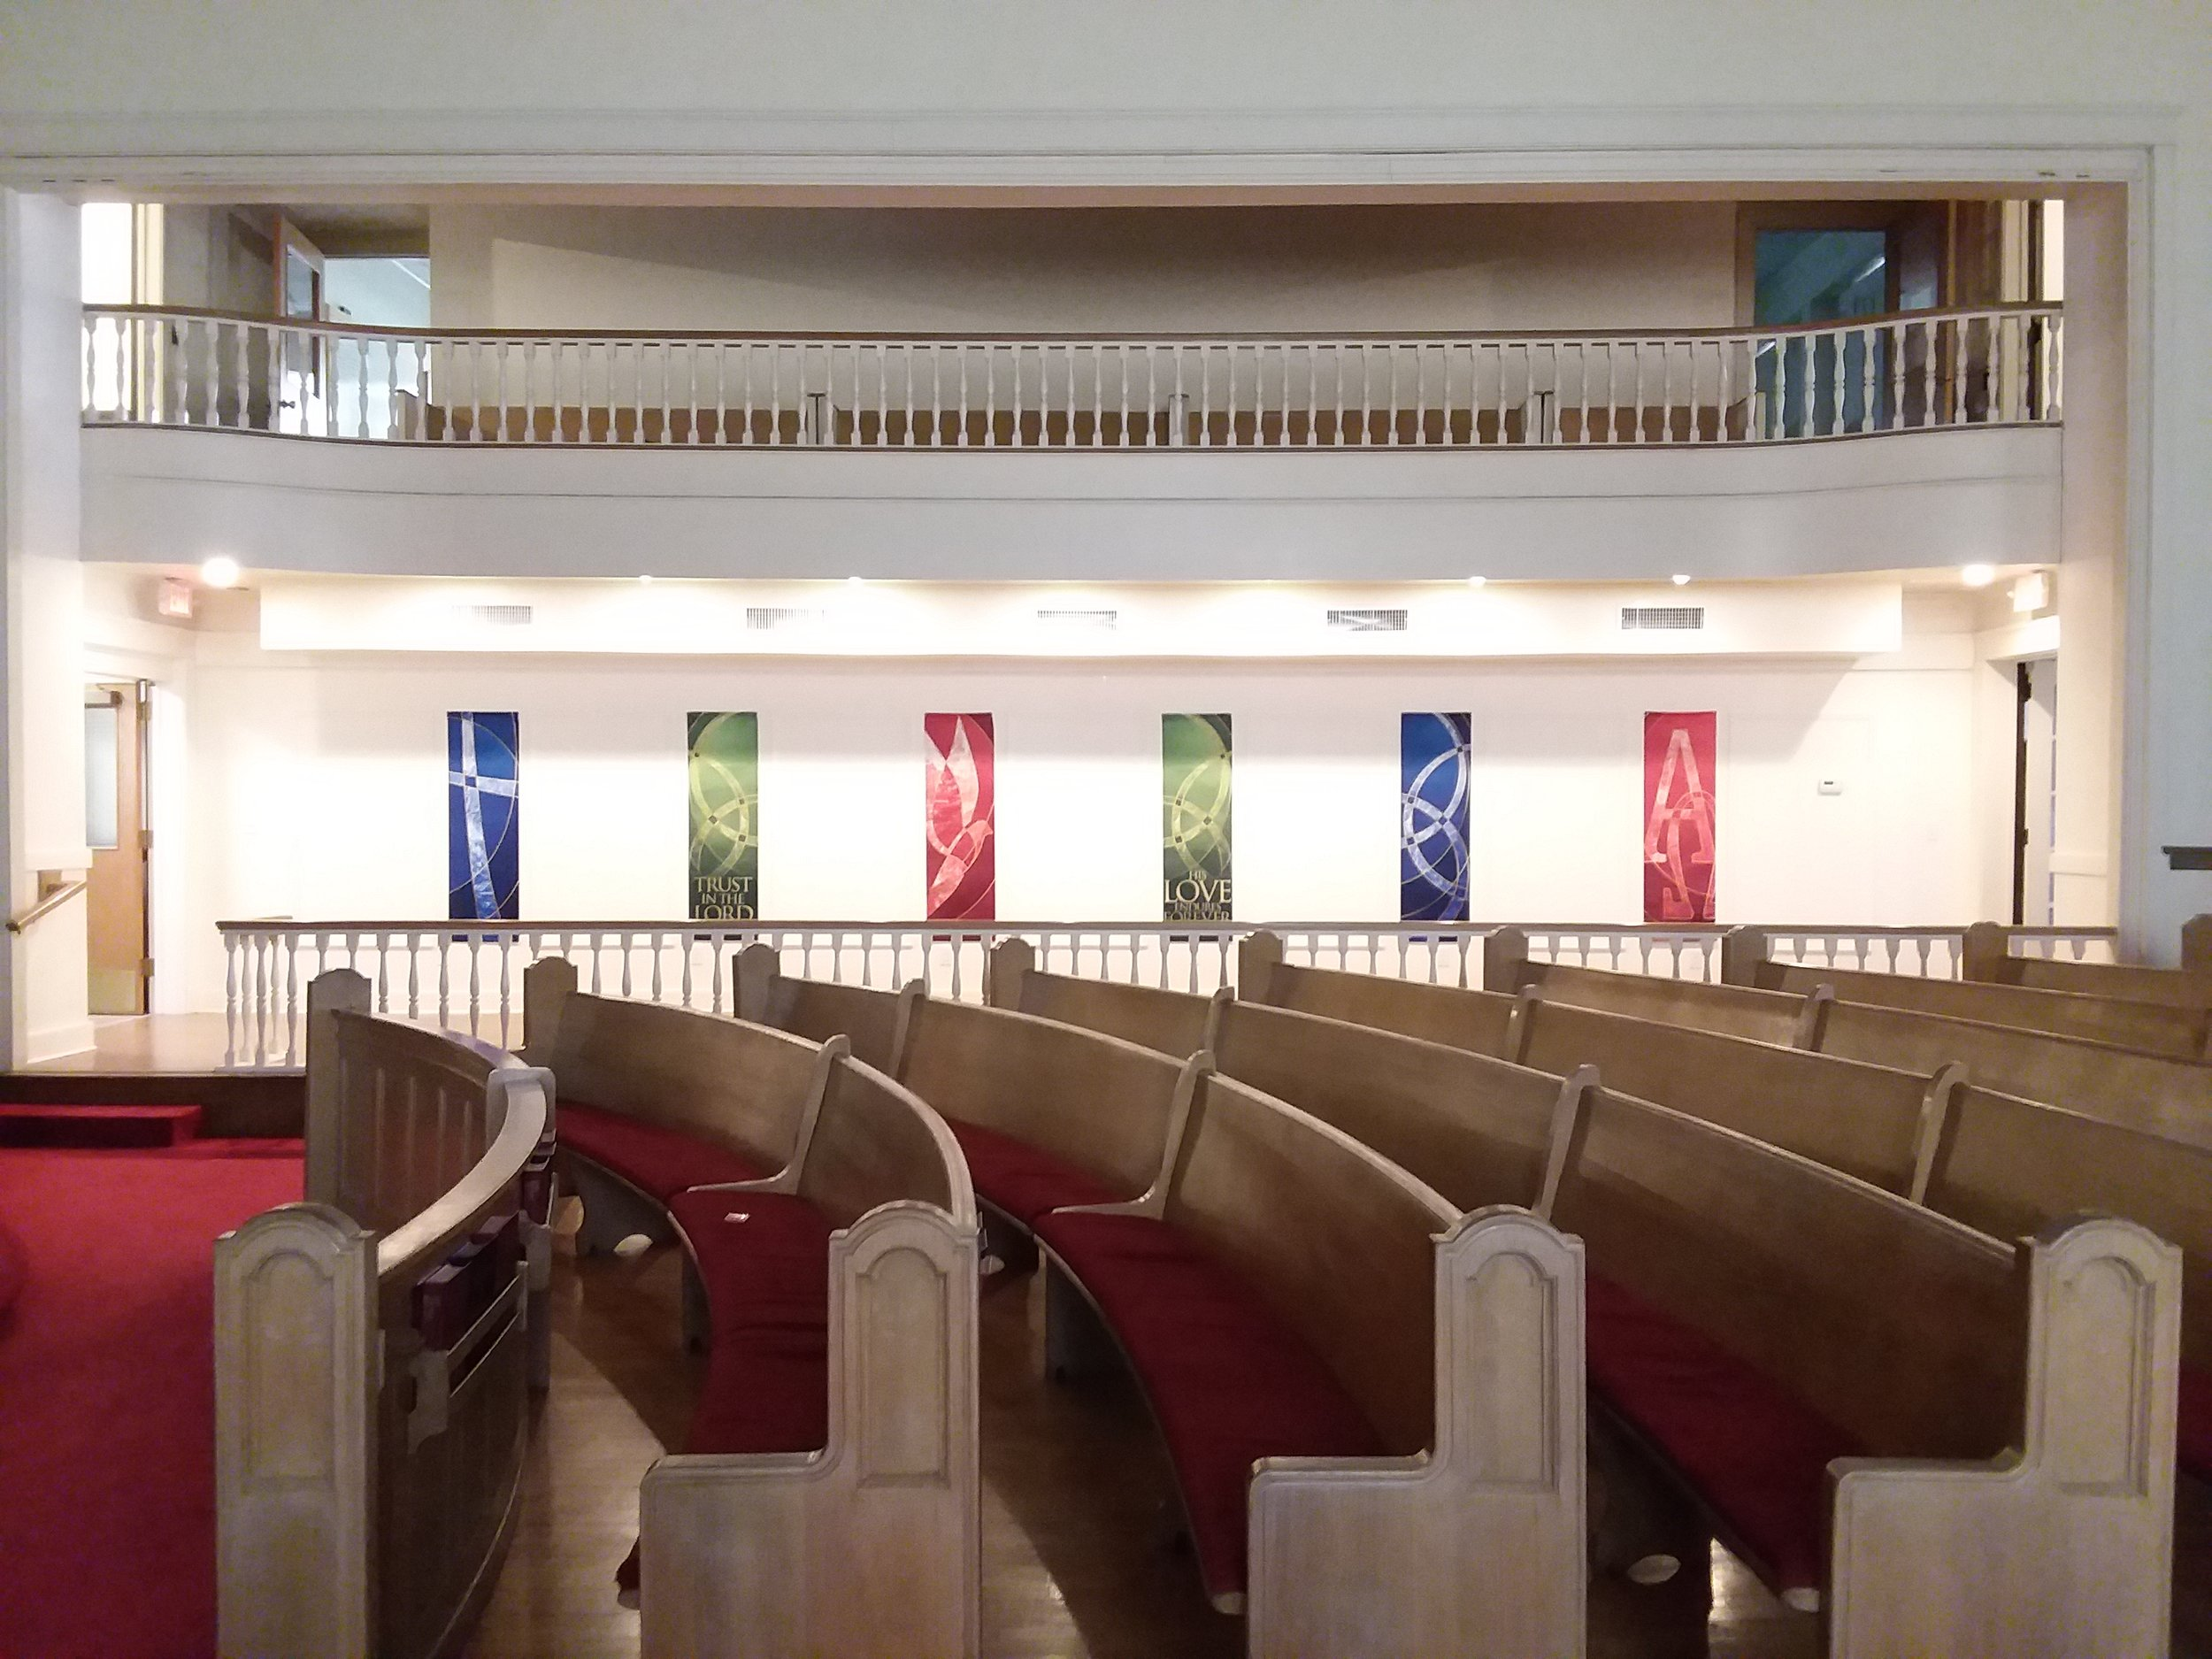 Competed Sanctuary side walkway with flag decorations